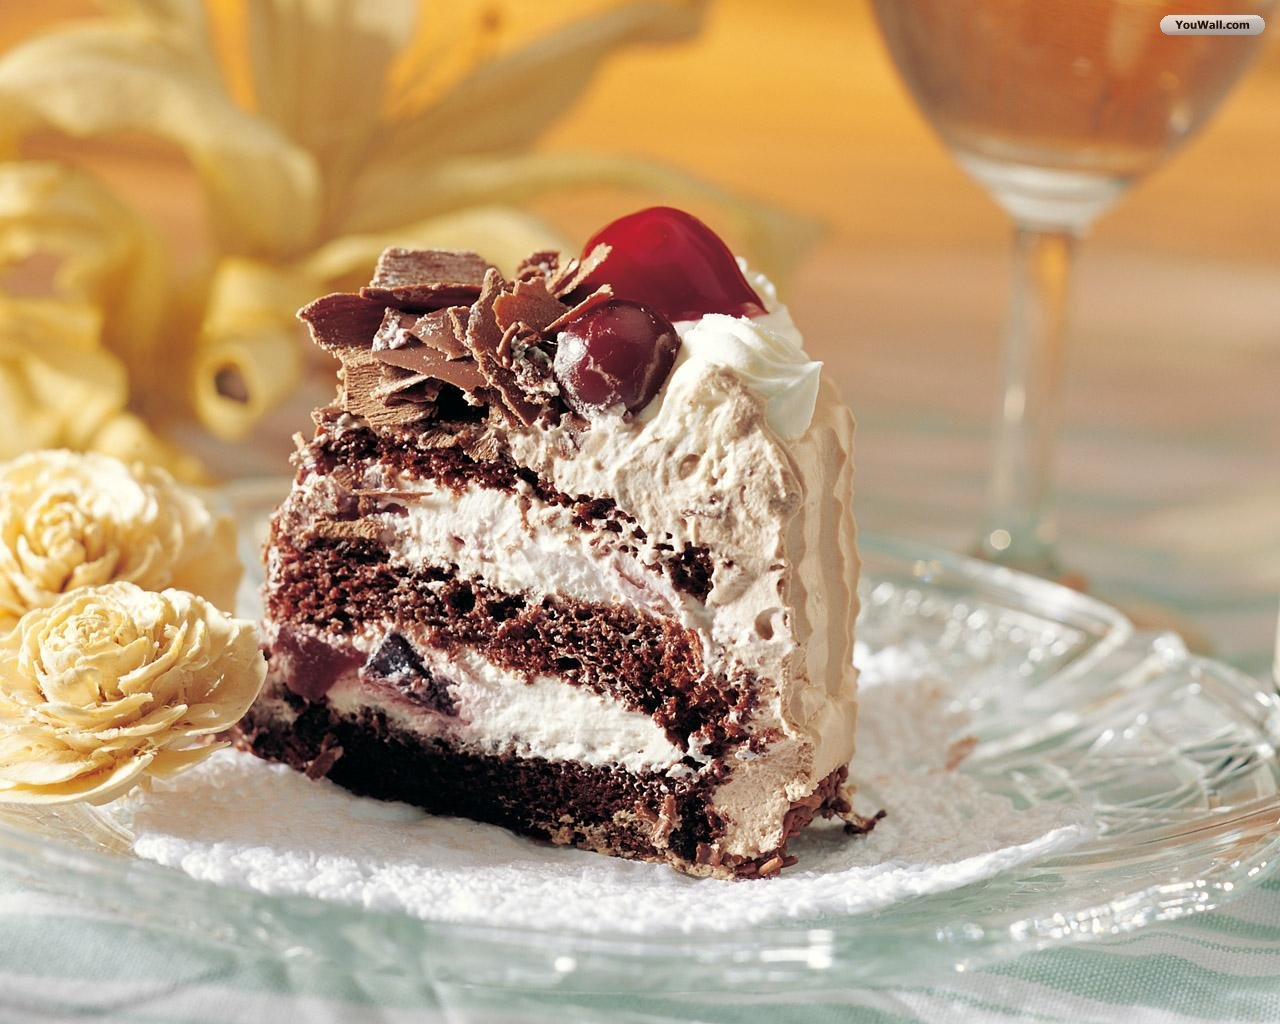 Chocolate Cake Wallpaper Hd Wallpapers